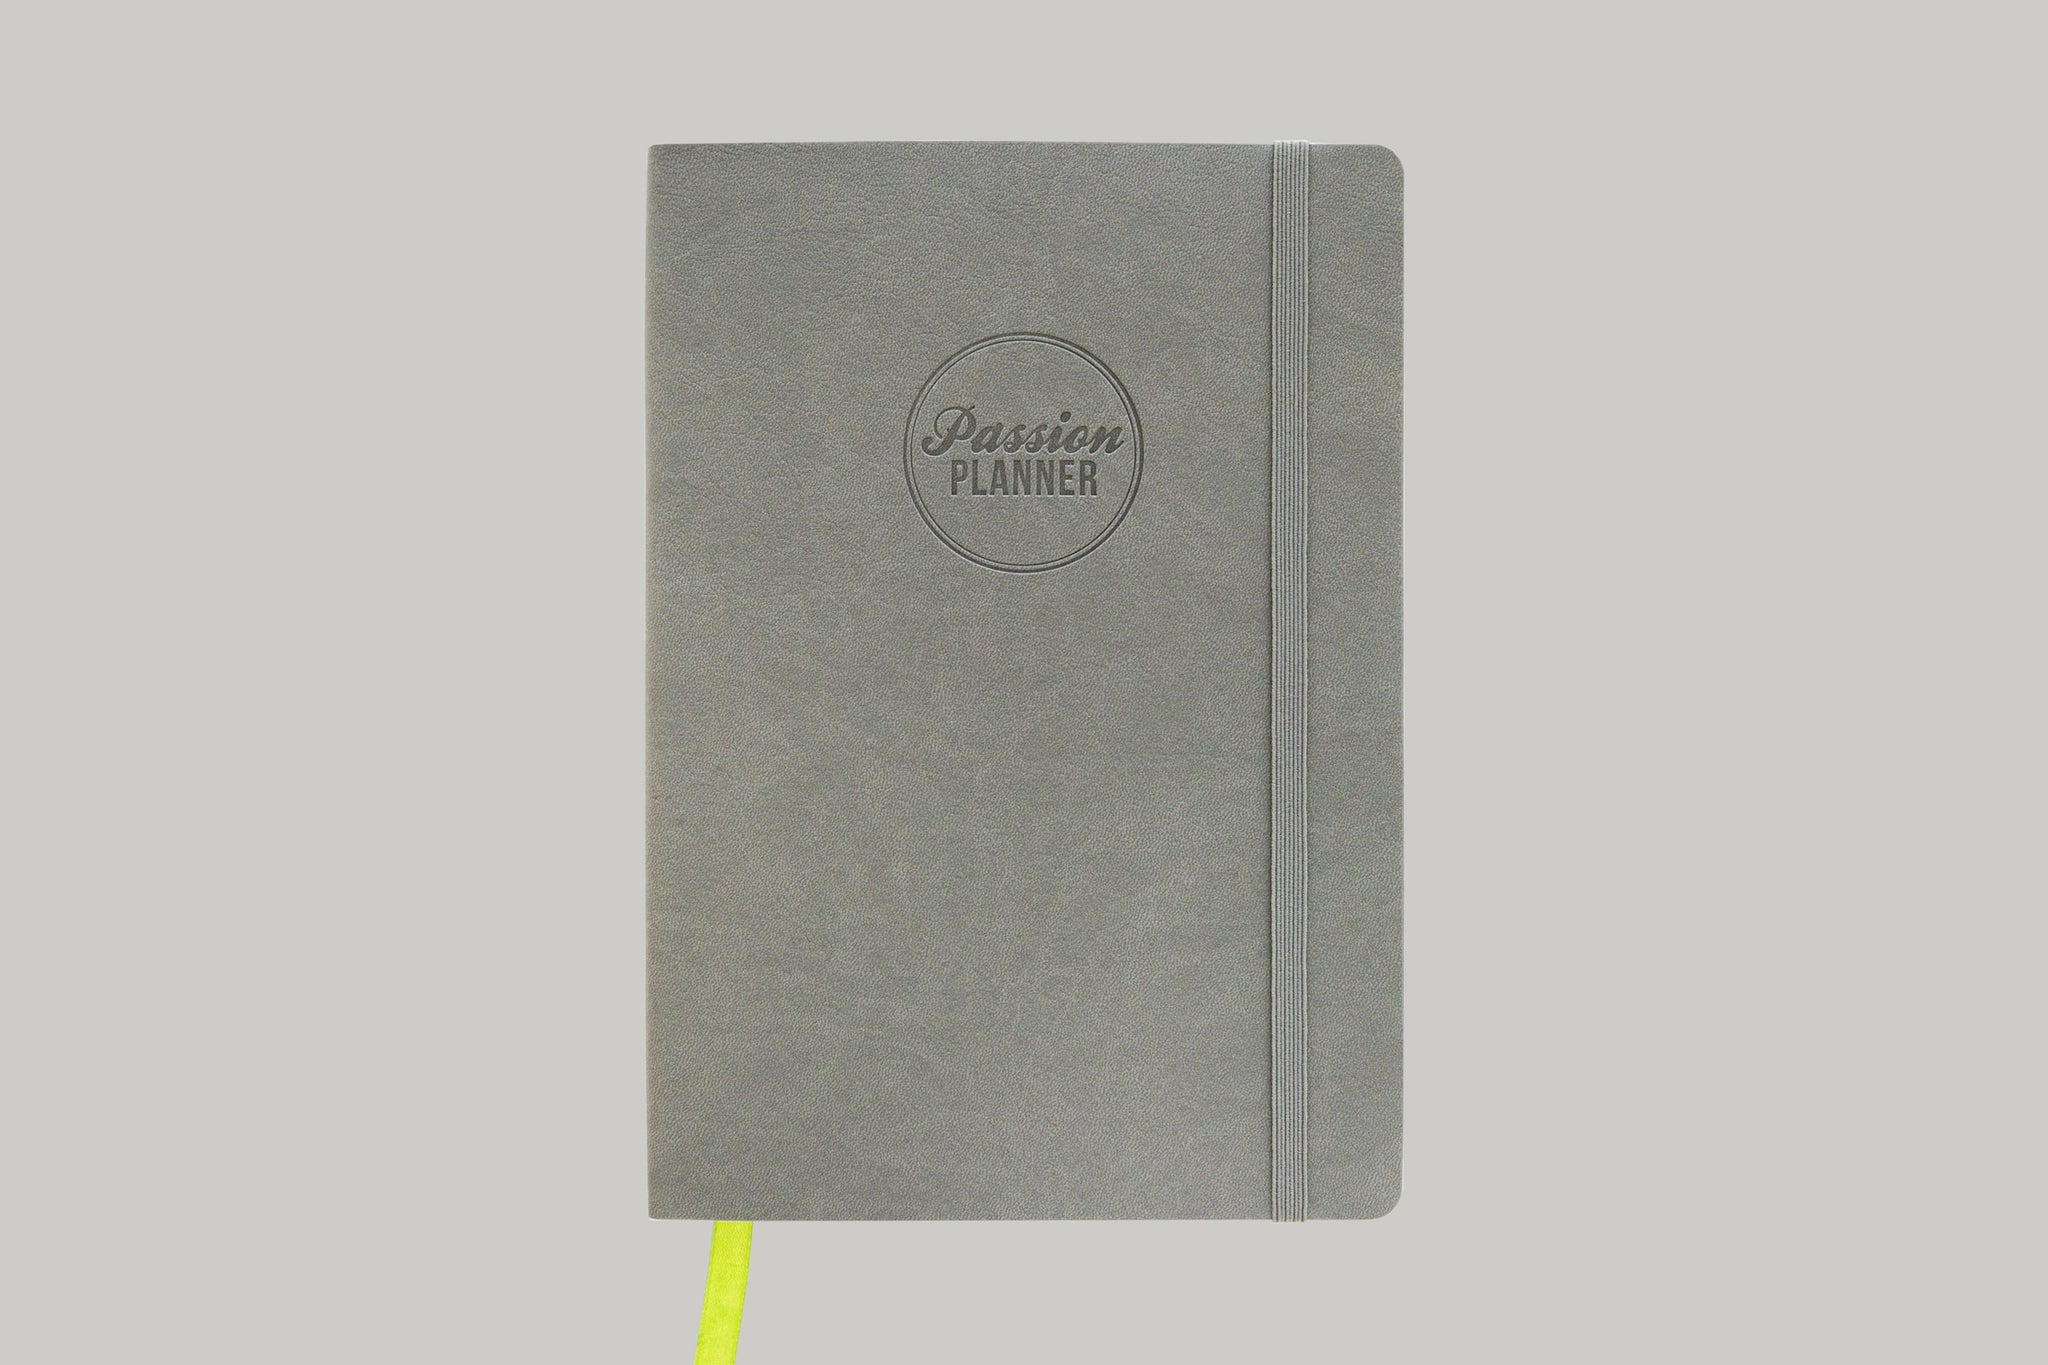 Gray Passion Planner with Lime Green Ribbon Against Light Gray Background